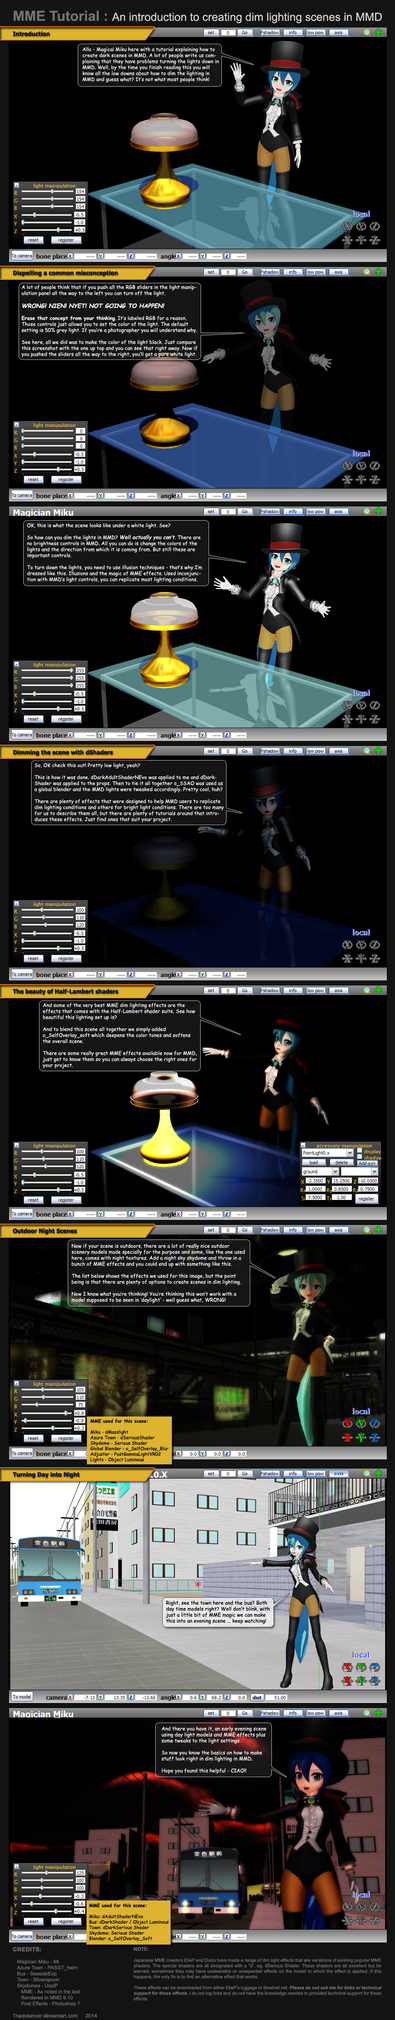 MME Tutorial: Creating Dim lighting scenes in MMD by Trackdancer